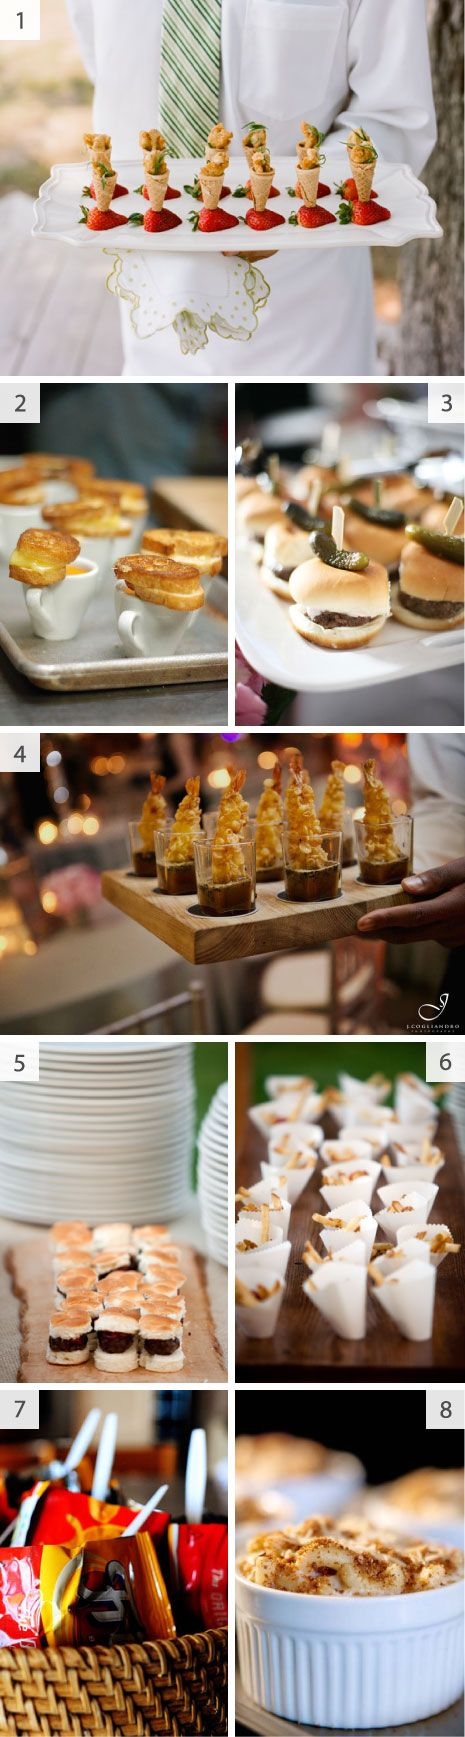 I'm loving the mini food idea! But maybe for a wedding shower luncheon instead of a wedding reception? It's a long way off anyways :p